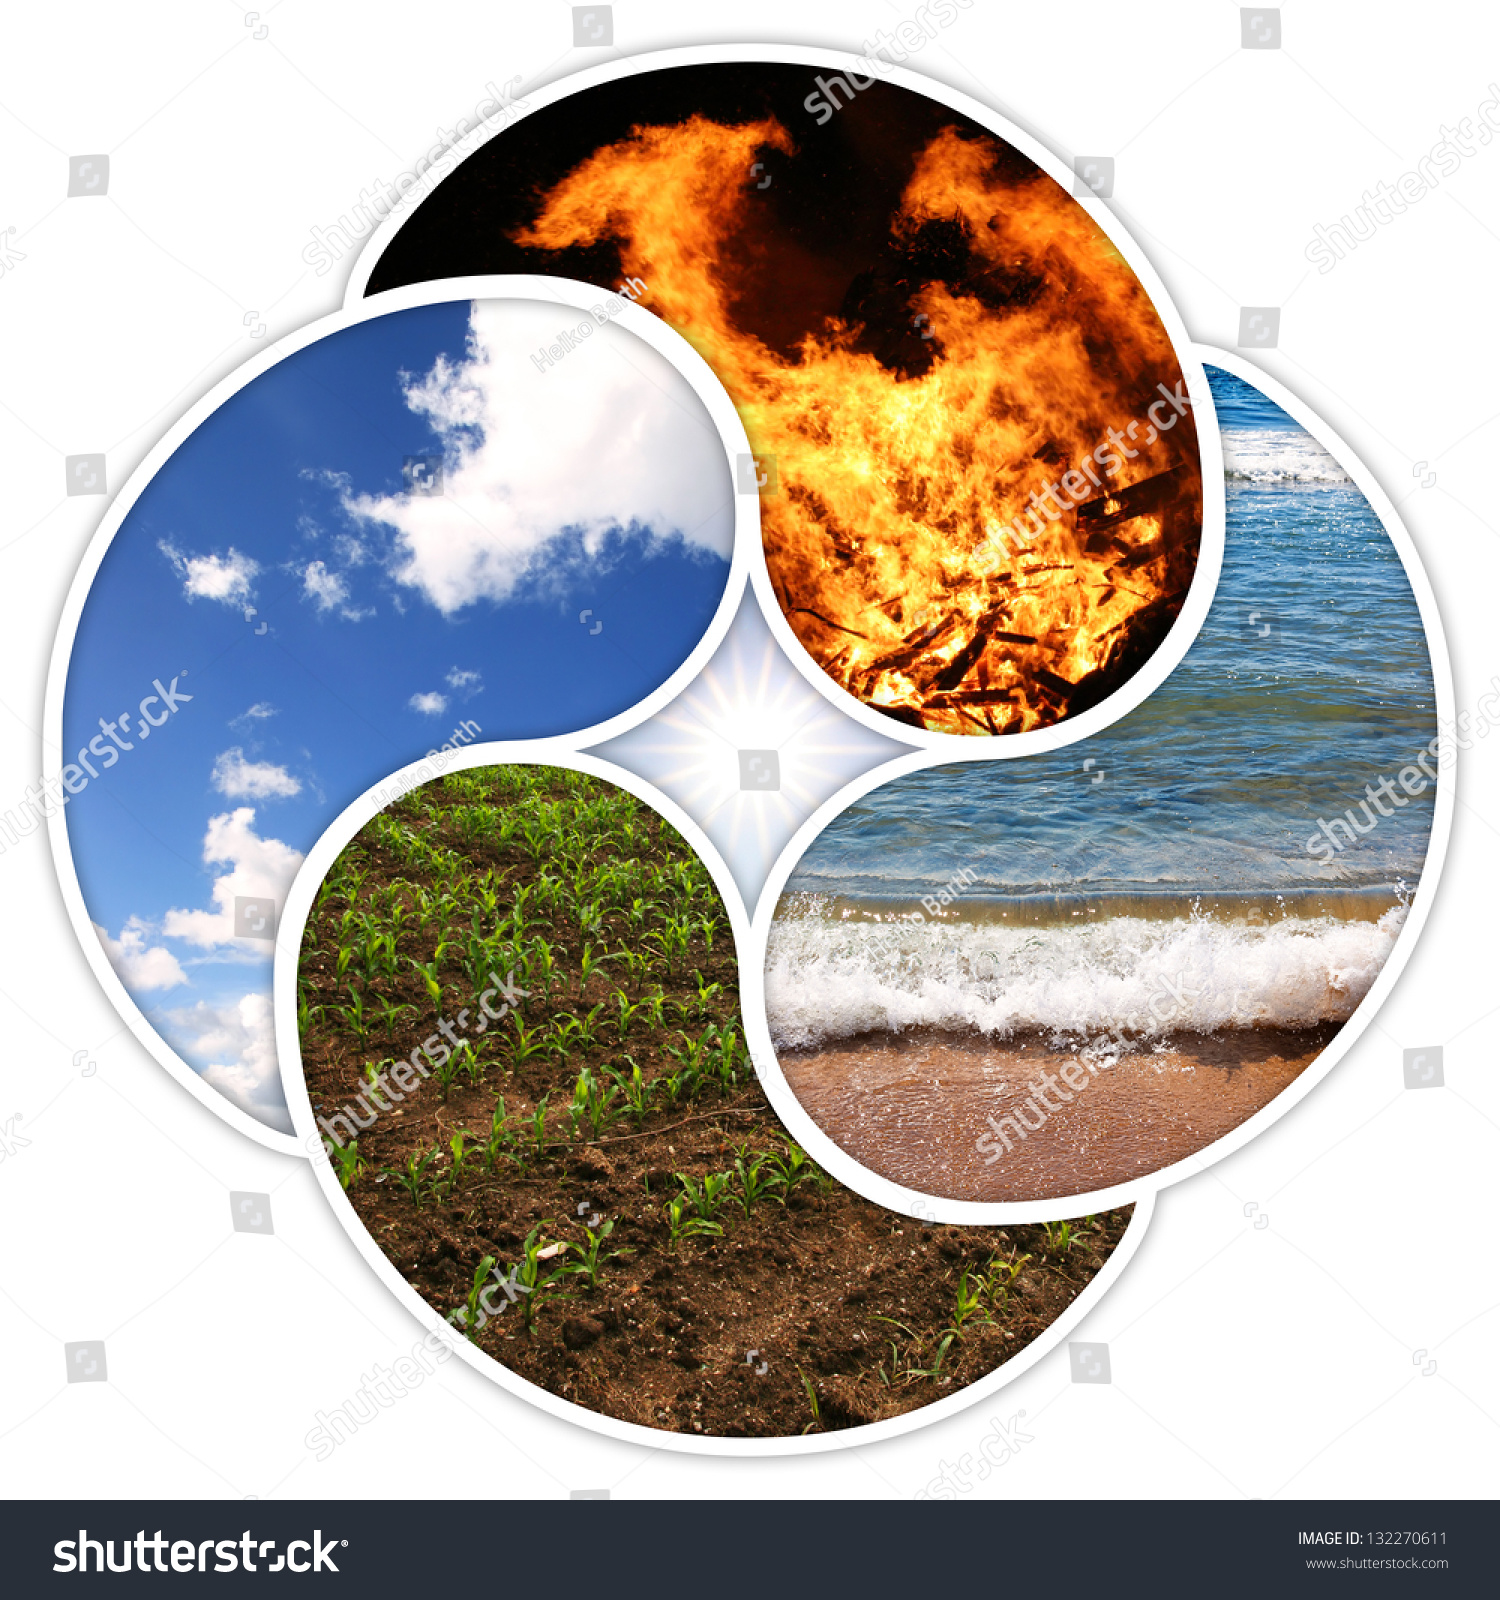 Four Elements Nature Fire Water Earth Stock Photo